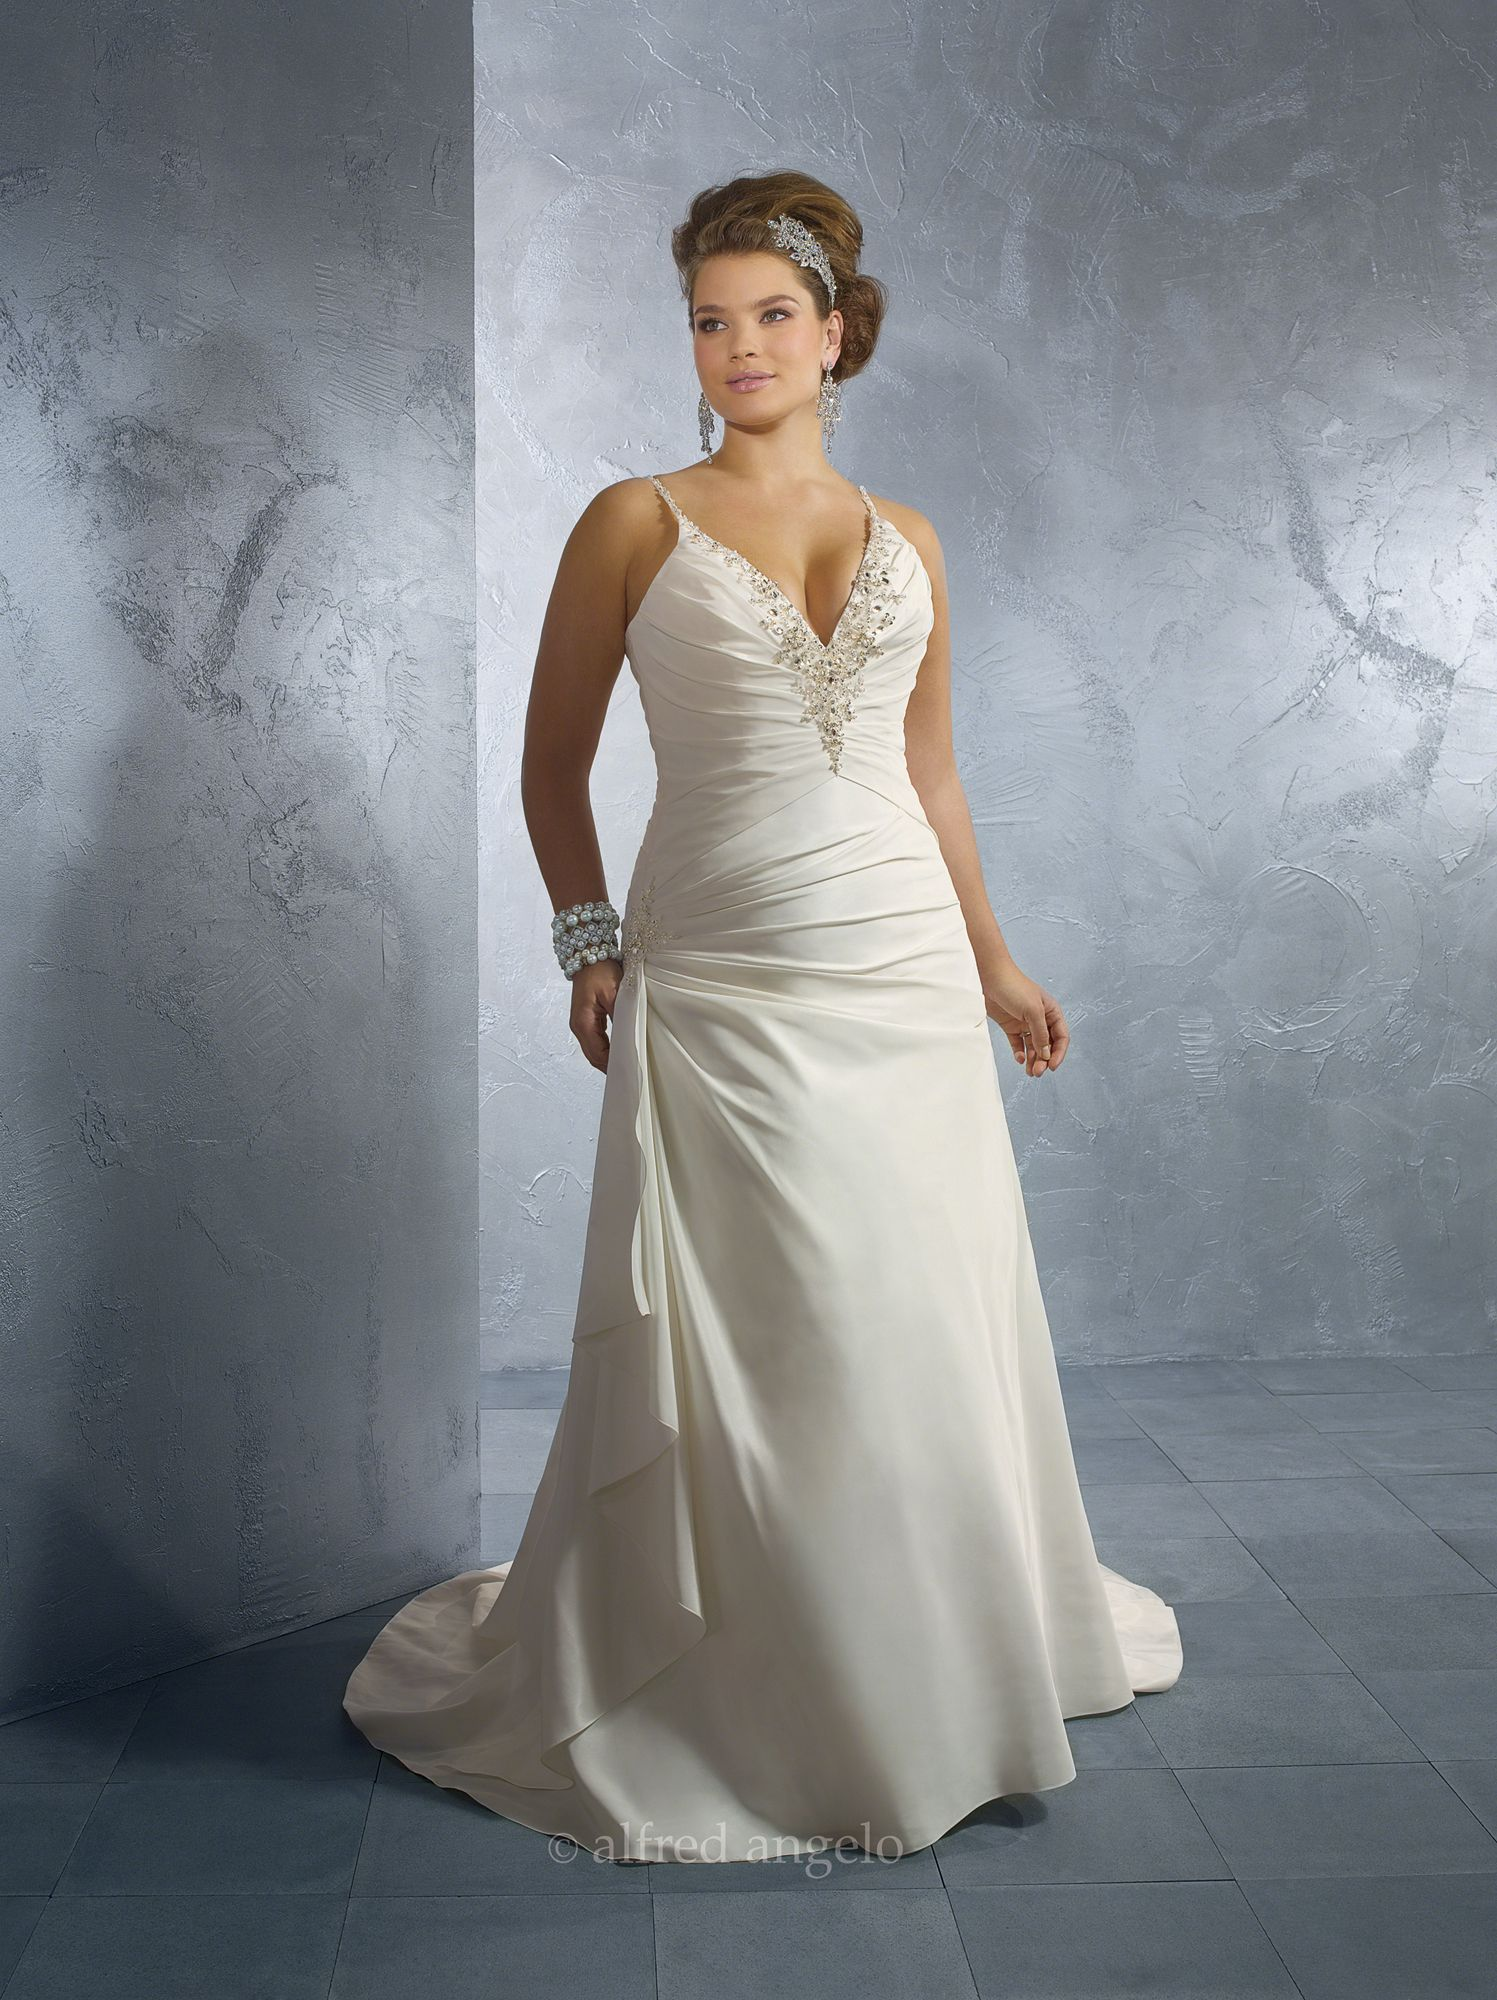 Alfred Angelo Plus Size Wedding Dresses Wedding Dress Styles Wedding Dresses Plus Size Bridal Gowns